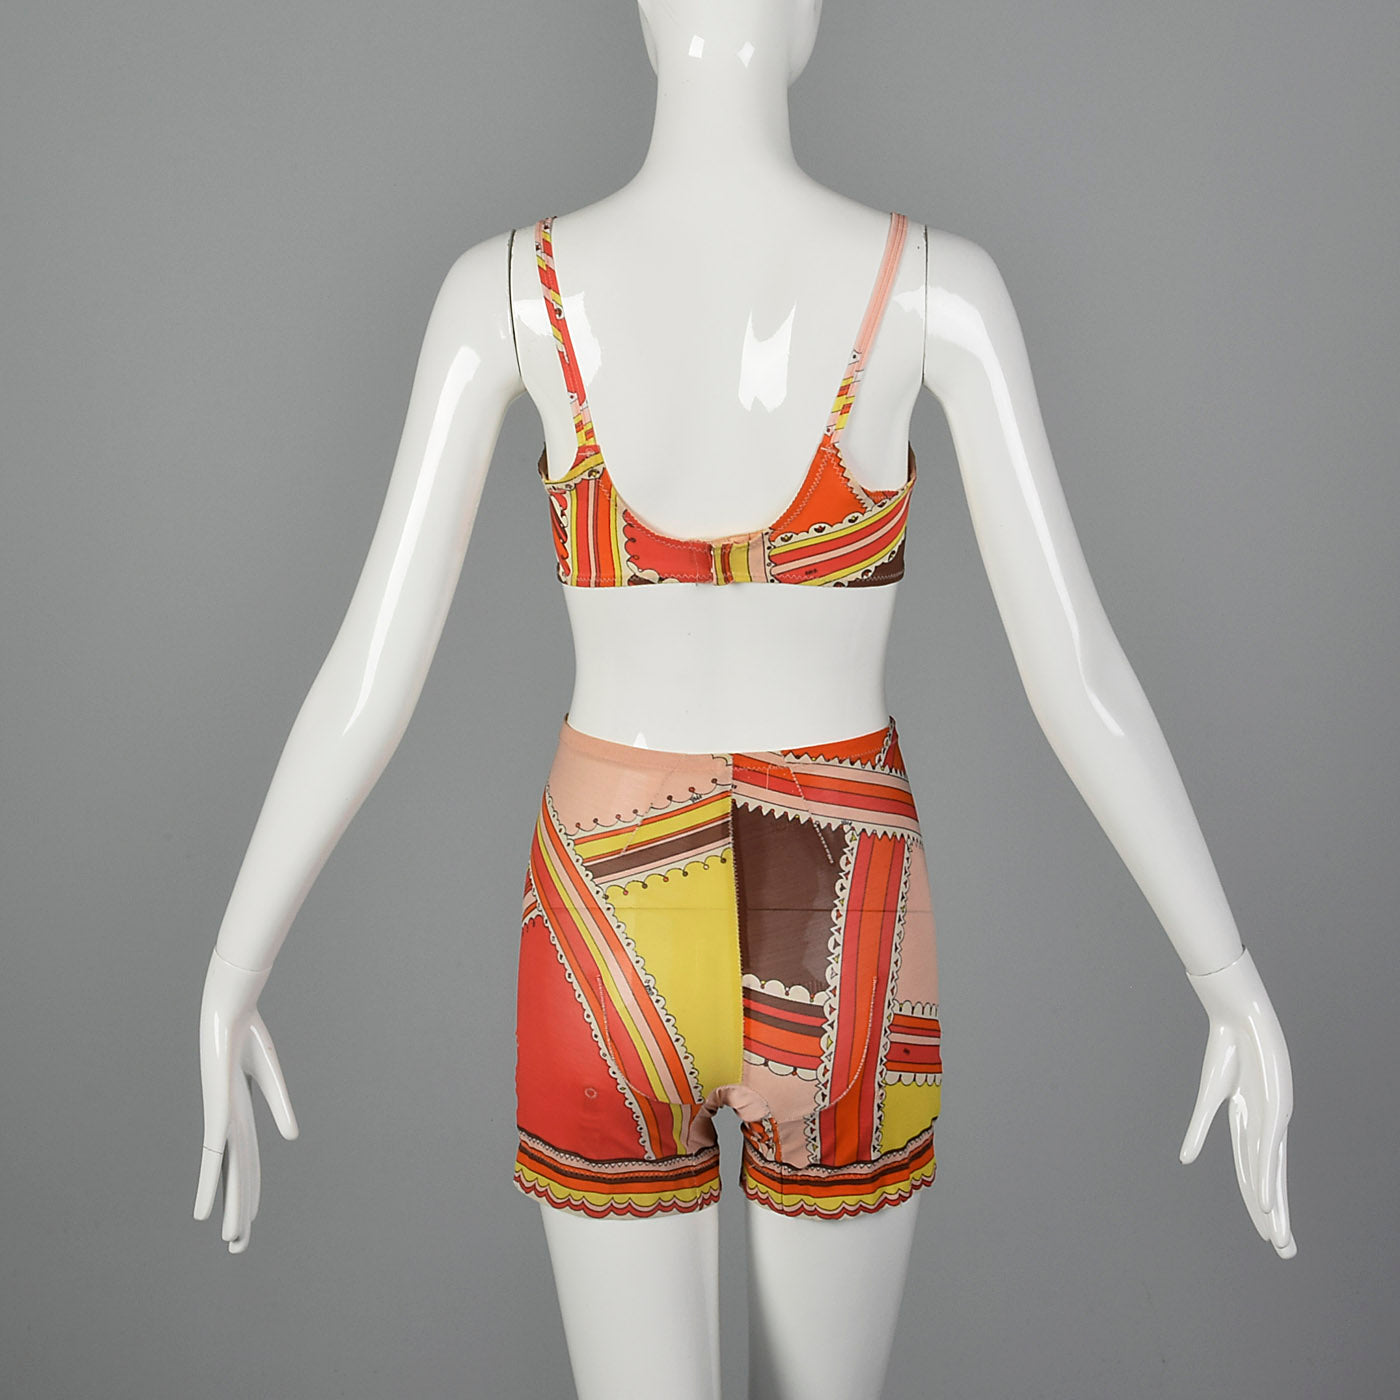 1960s Emilio Pucci Formfit Rogers Bra and Girdle Set